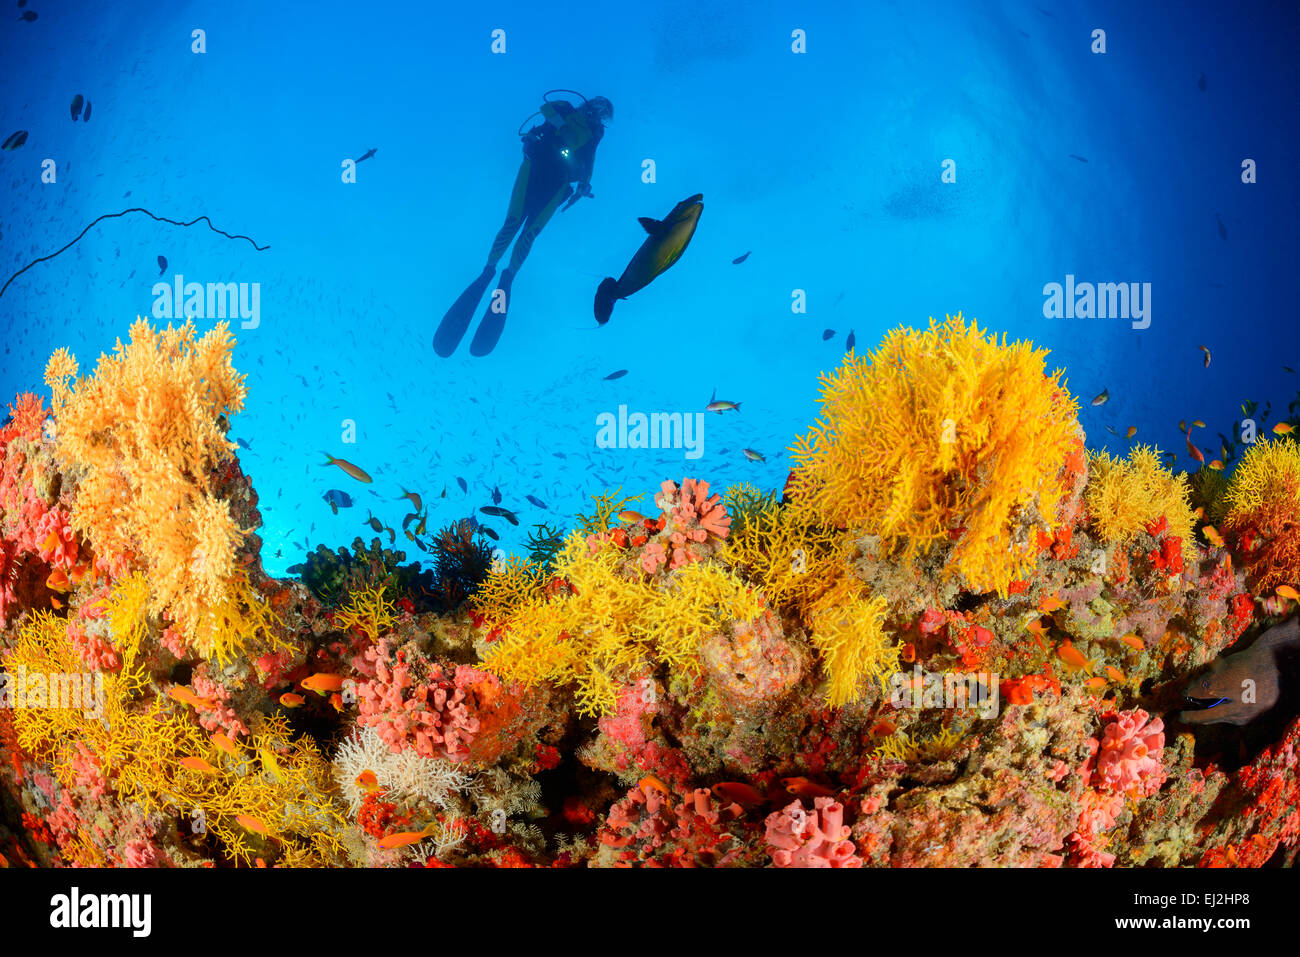 Acabaria sp., Coral reef with Yellow fan coral and scuba diver, Muthafushi Thila, Baa Atoll, Maldives, Indian Ocean Stock Photo